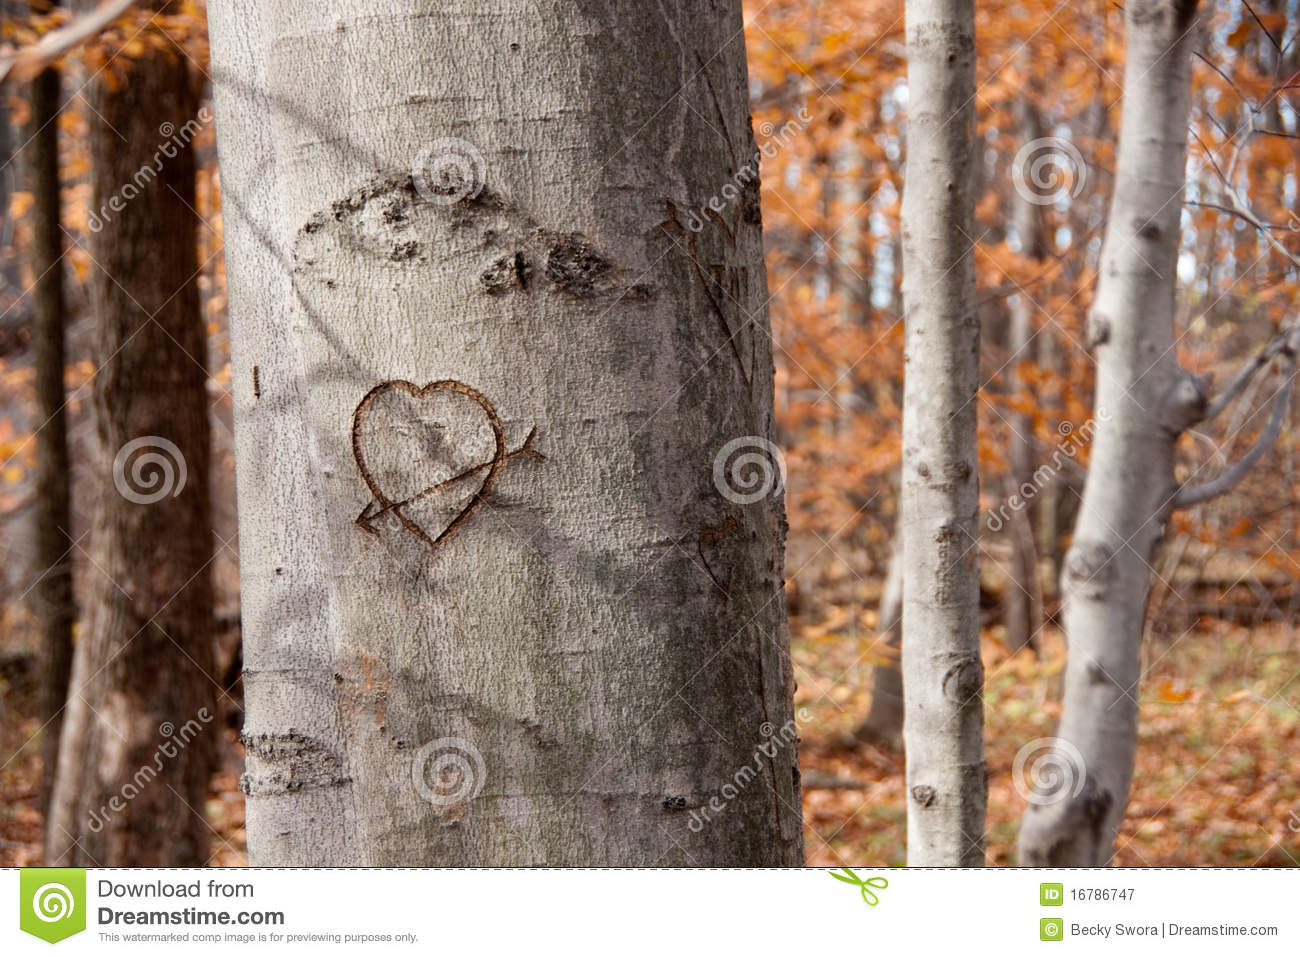 Carved Heart on Tree